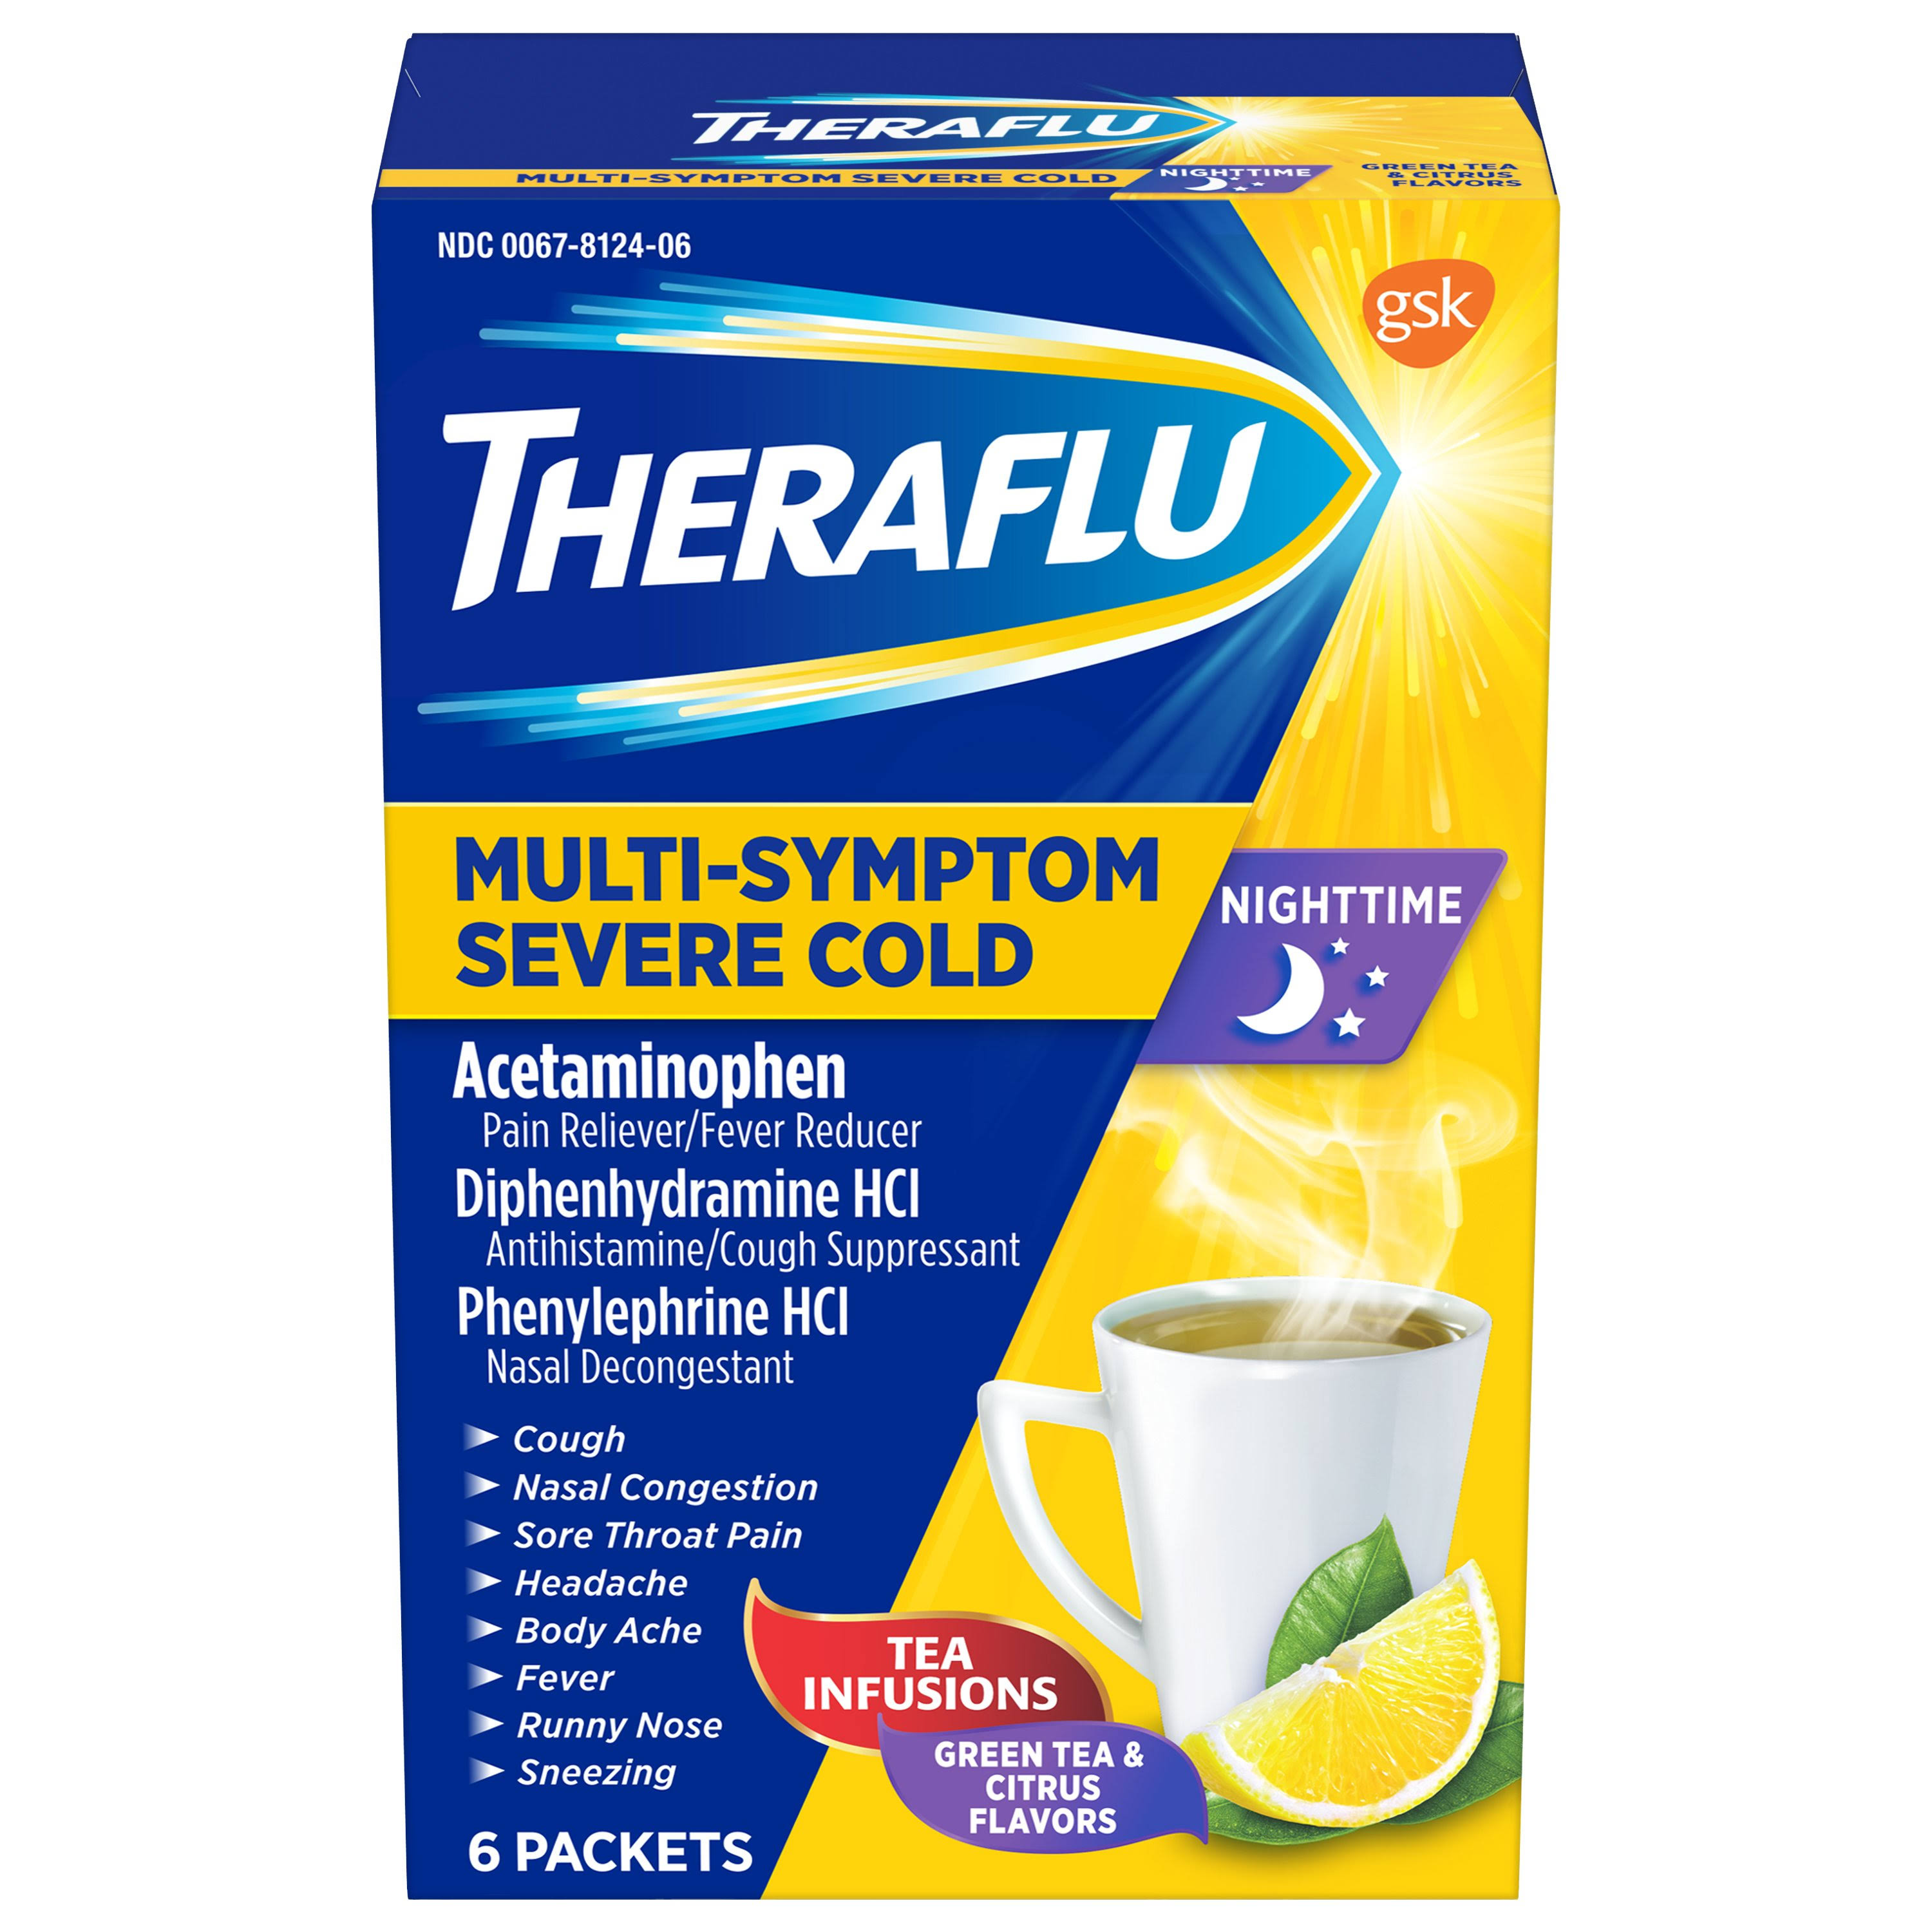 Theraflu Nightime Multi-Symptom Severe Cold - 6 Packets, Green Tea & Citrus